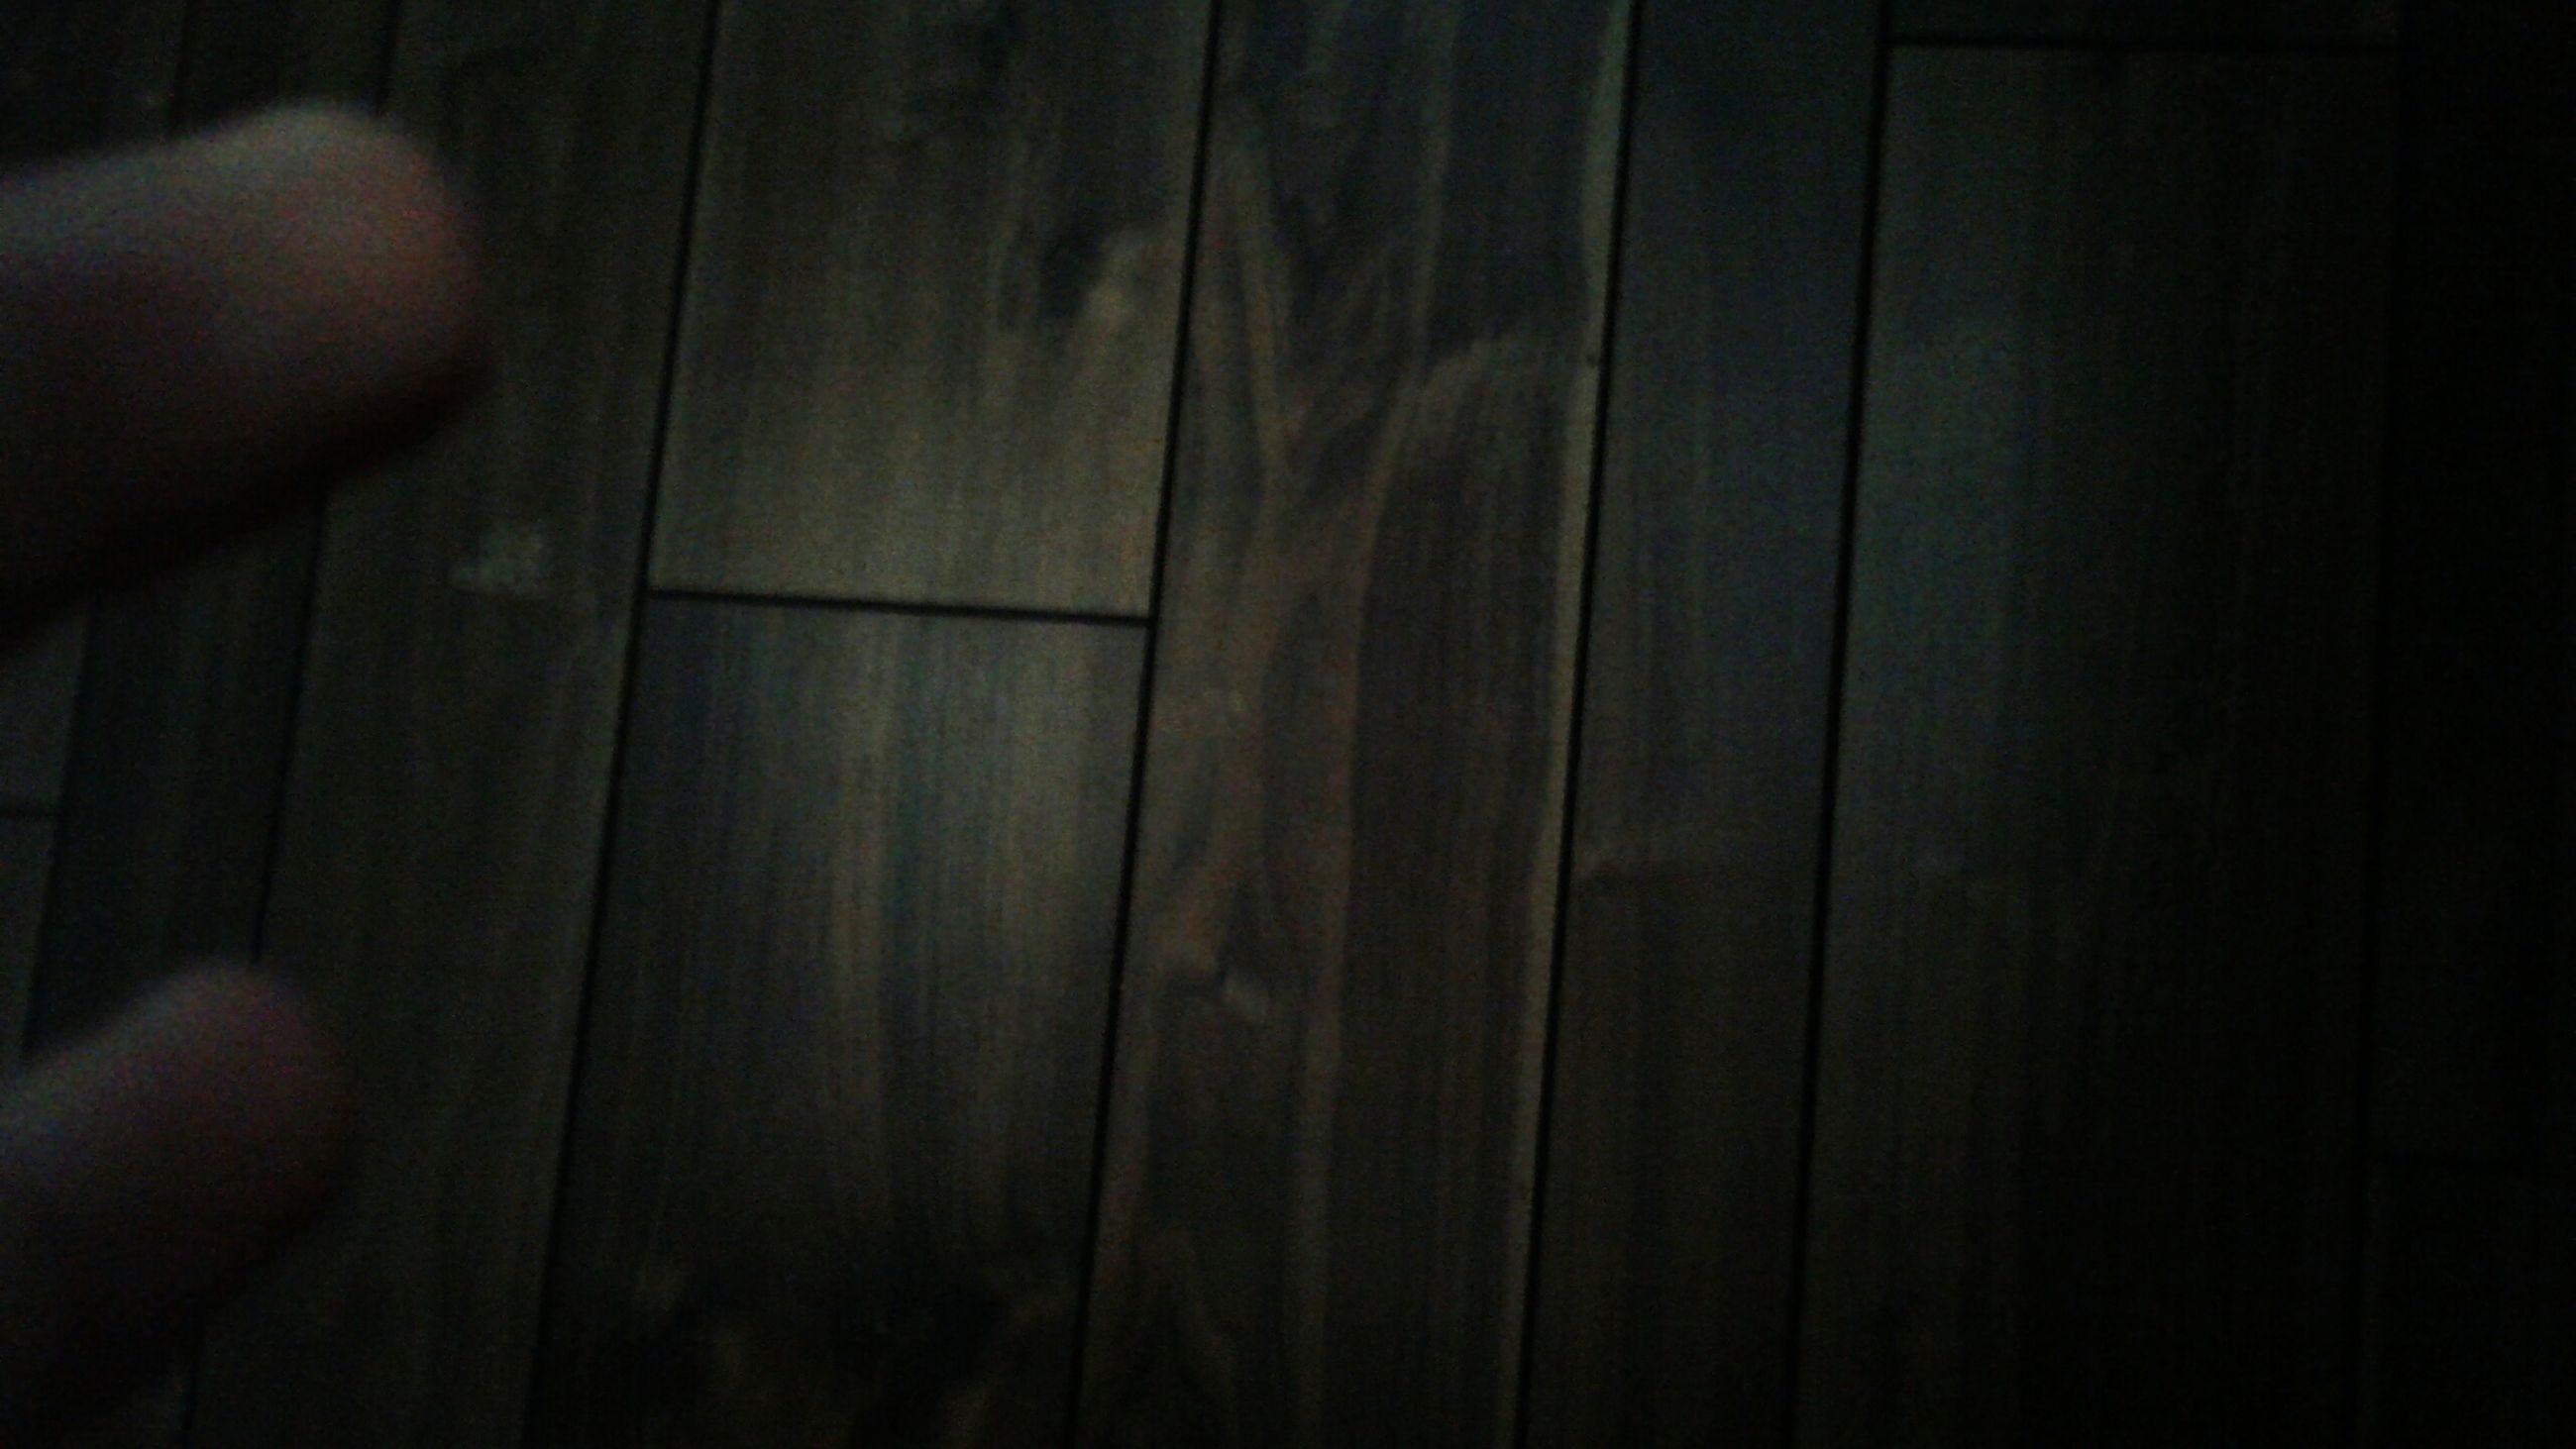 indoors, part of, person, wood - material, close-up, unrecognizable person, curtain, cropped, home interior, door, textured, shadow, wooden, sunlight, lifestyles, pattern